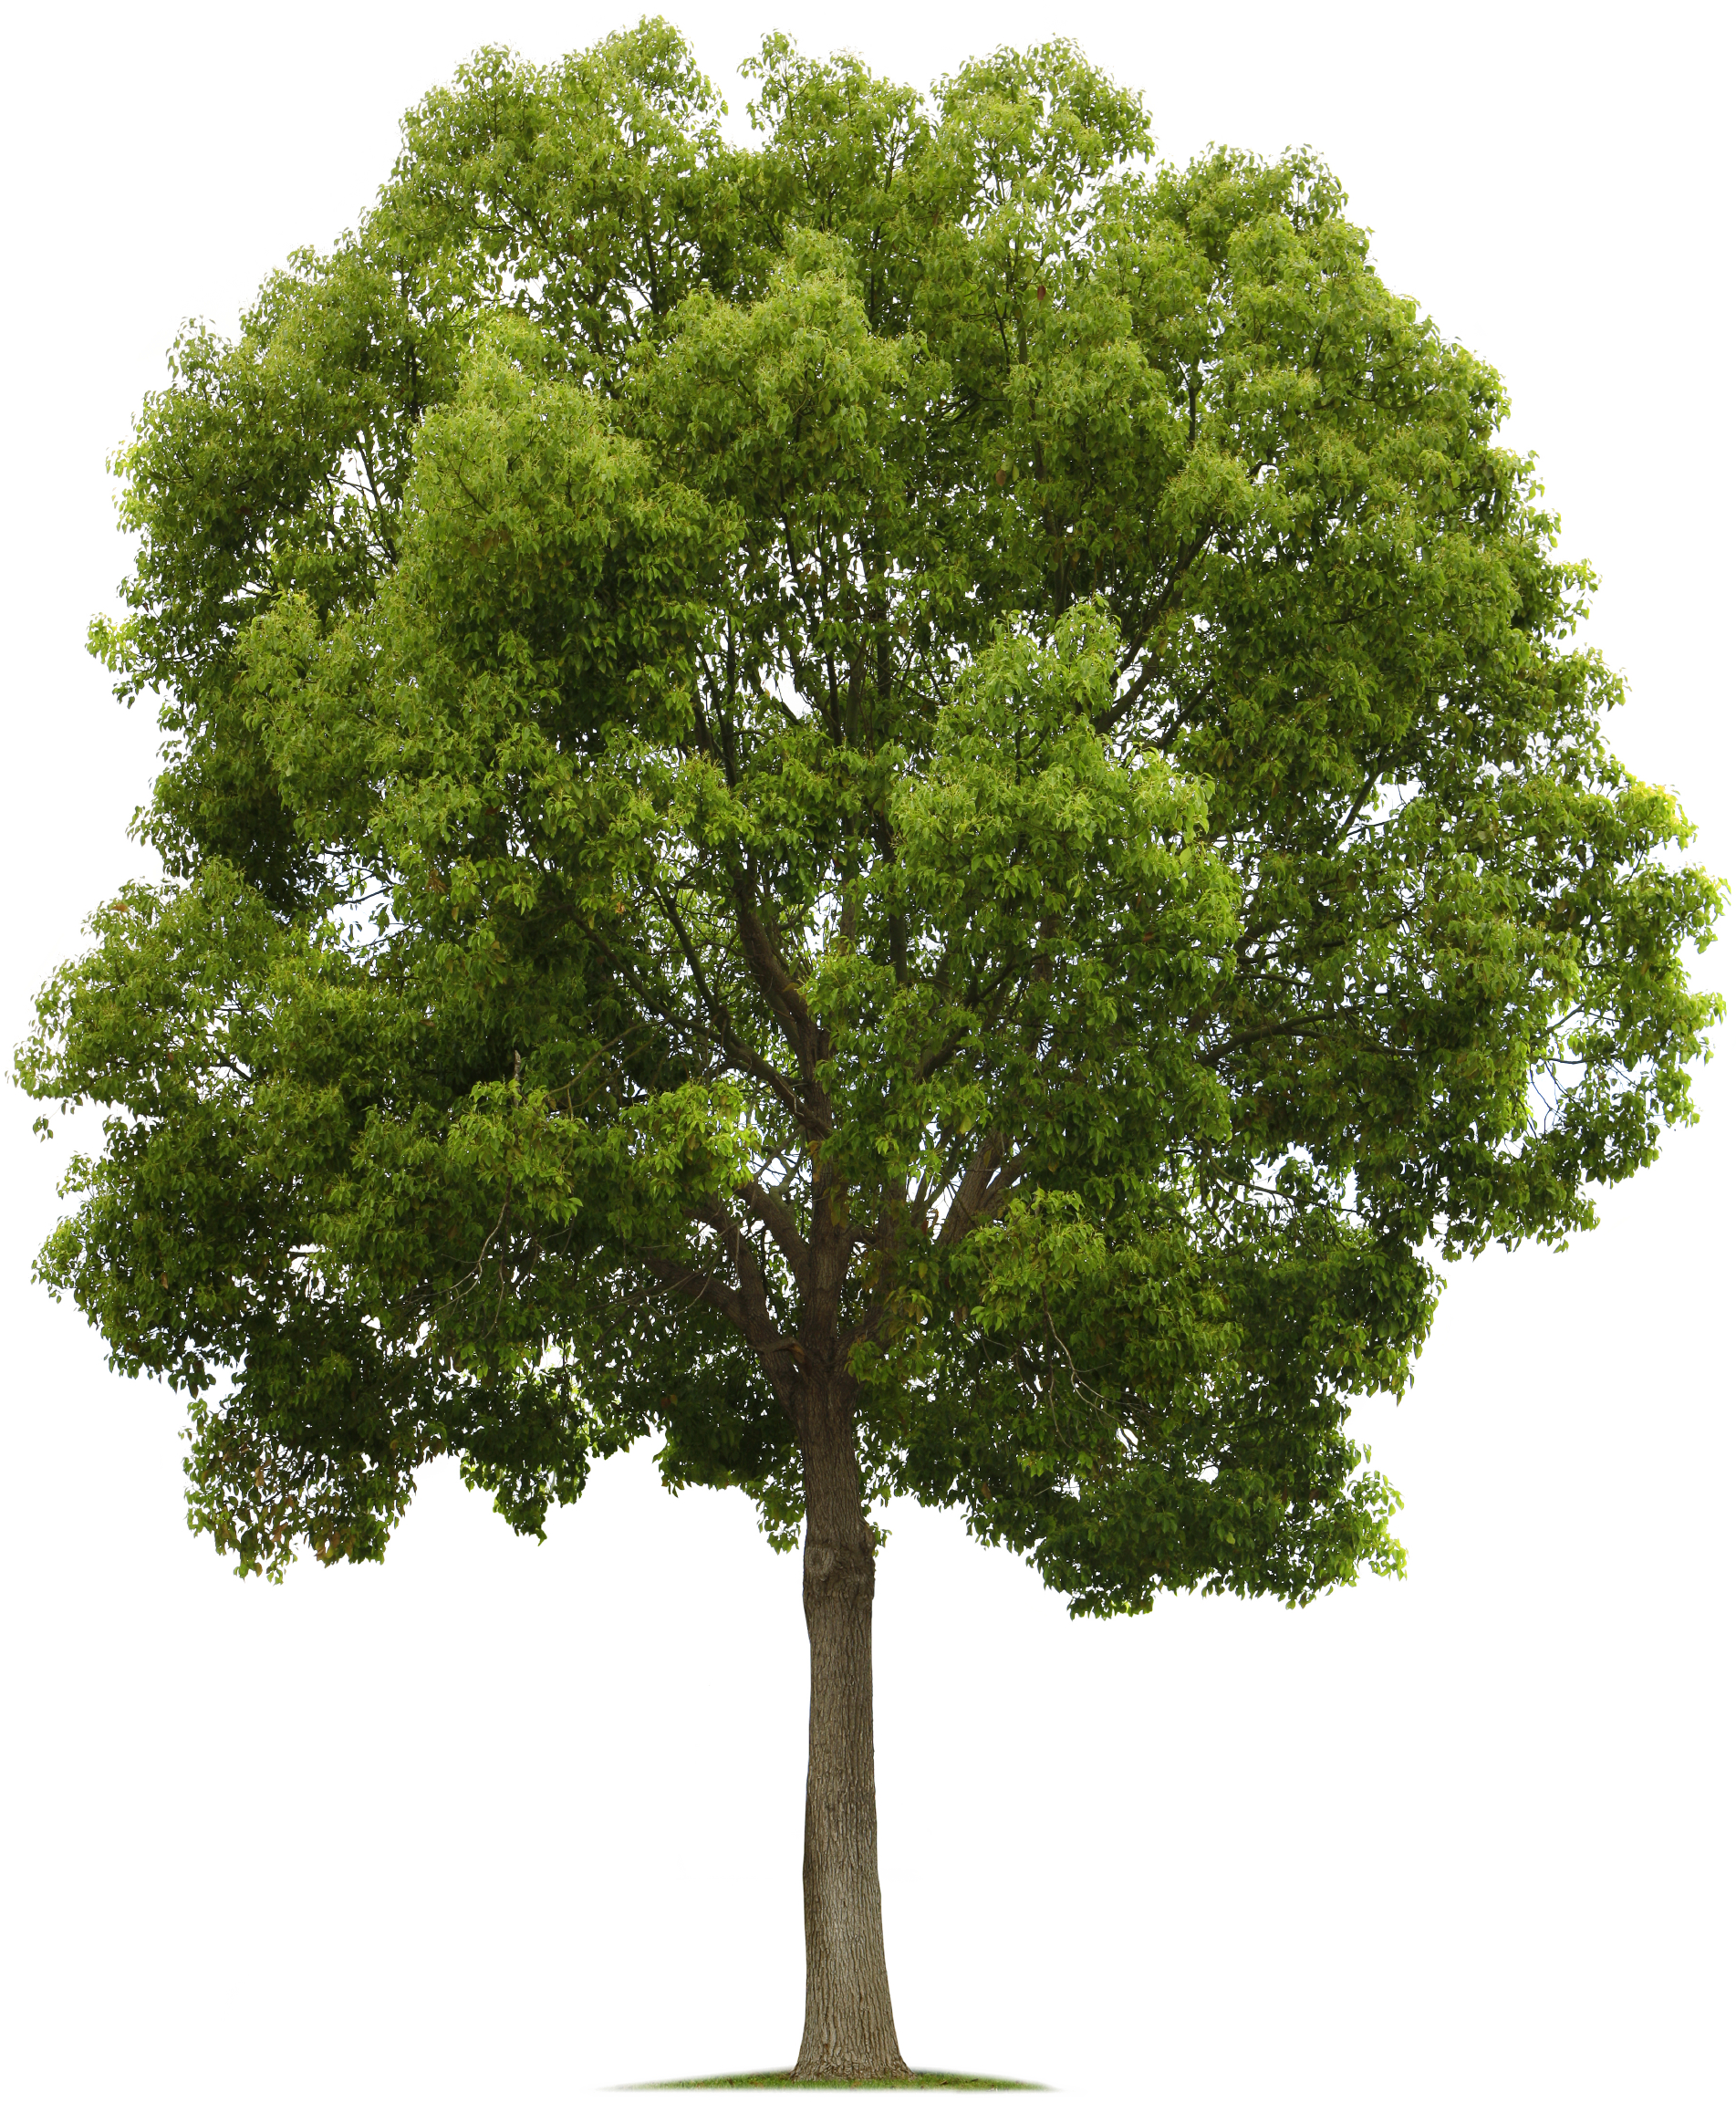 Tree Png Images Small Leaf Cartoon Trees Background Free Transparent Png Logos Cartoon tree png cliparts, all these png images has no background, free & unlimited downloads. tree png images small leaf cartoon